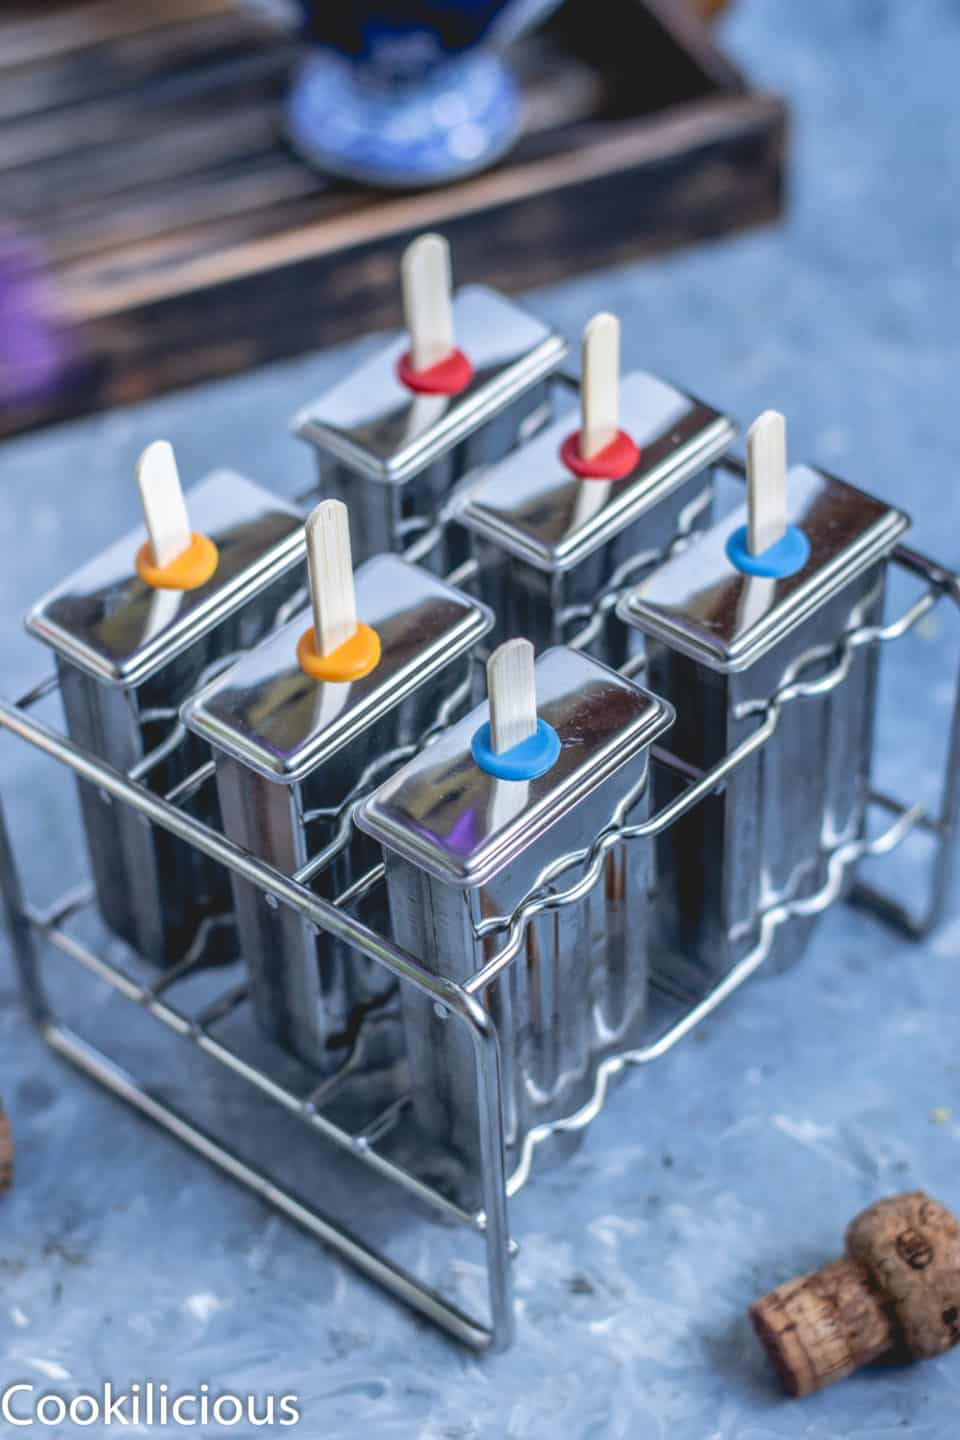 Masala Soda Blueberry Popsicles in a Popsicle molds